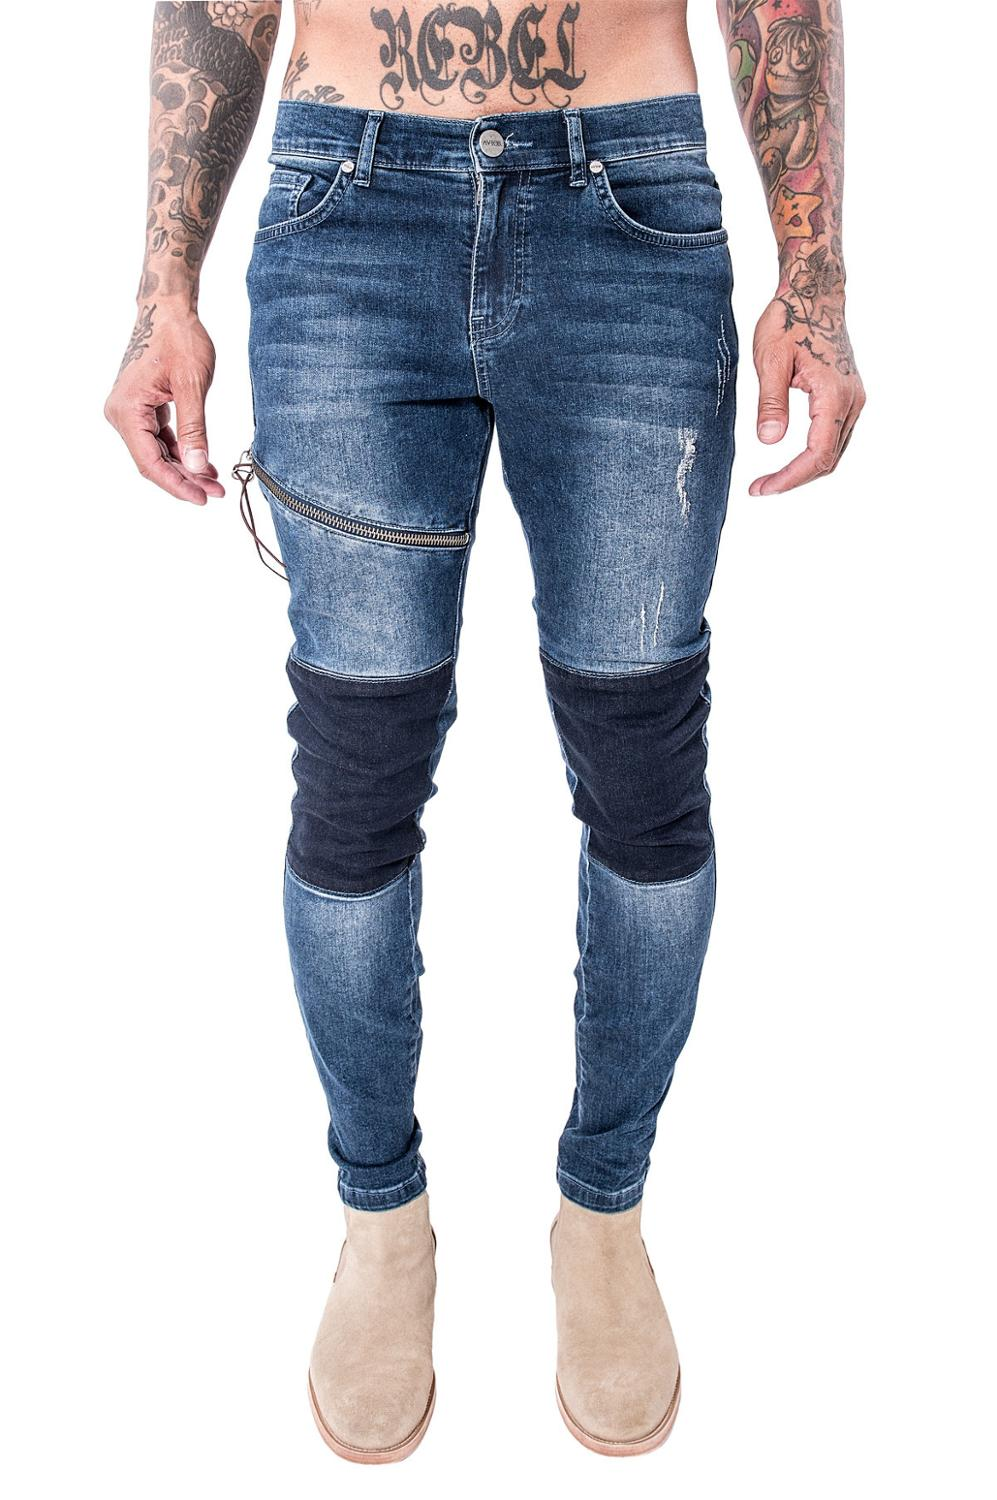 Hi-Street Mens Ripped  Biker Jeans Motorcycle Slim Fit zipper Patchwork Blue Moto Denim Pants Joggers Skinny Men 2017 hot sell big size outdoor boots men high top warm snow boots winter hiking shoes leather men trekking sneakers black